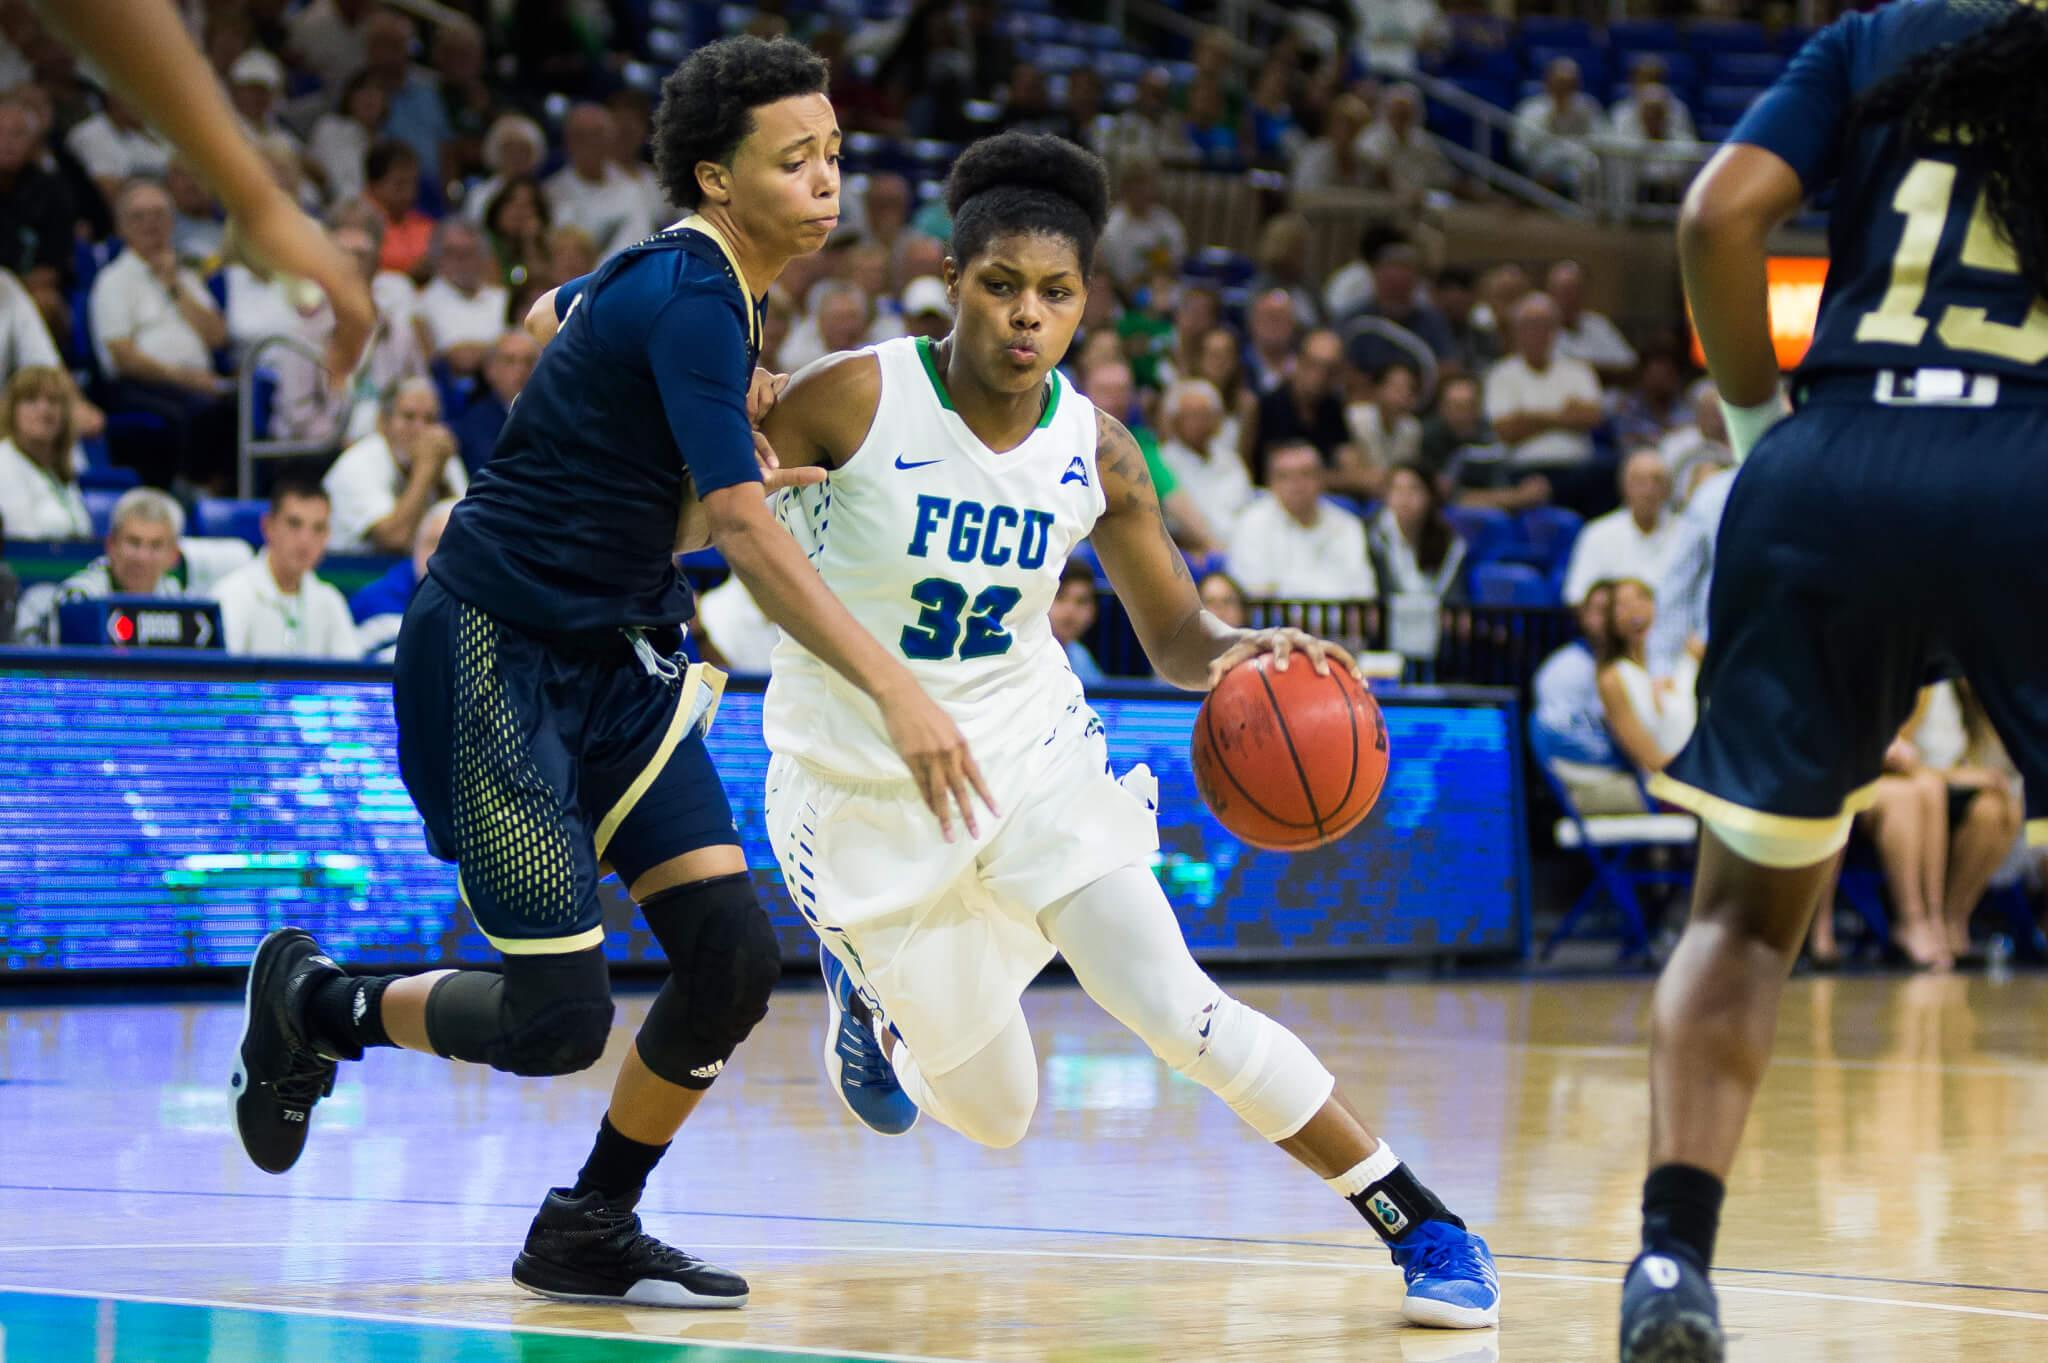 Women's basketball finishes long road-trip with a 94-55 win